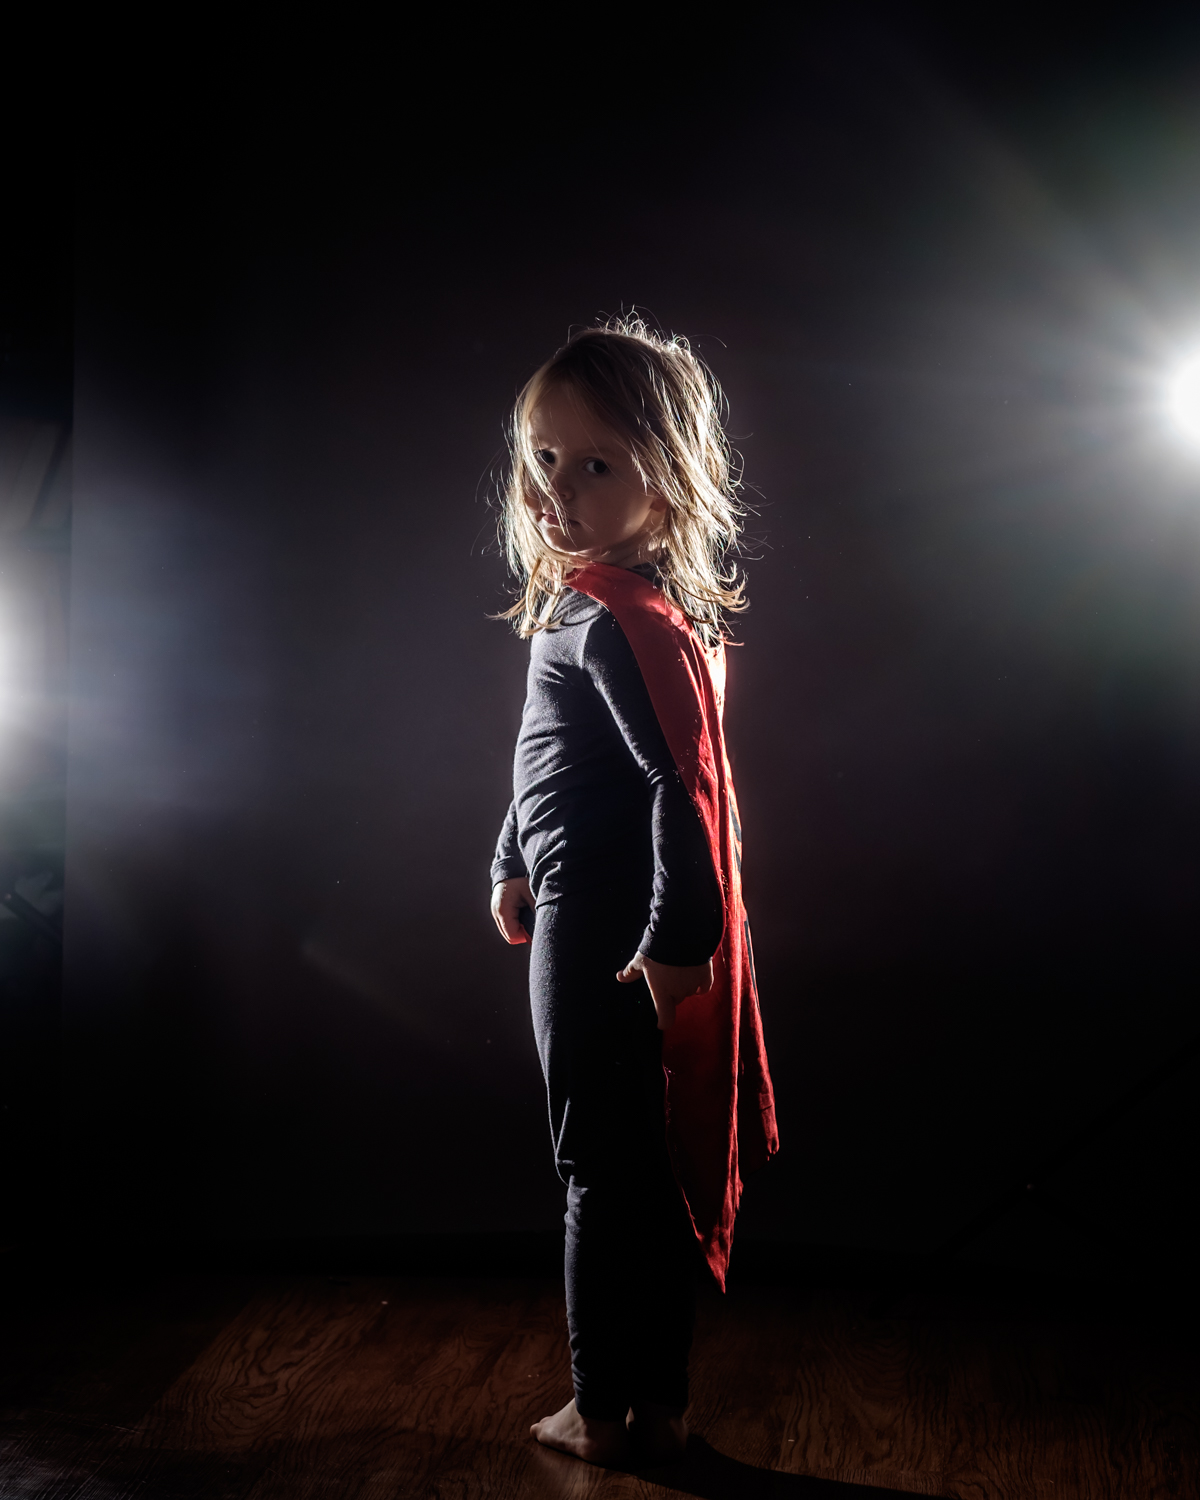 Image: Superheros are dramatic characters by nature. Using harsh backlight instead of soft front lig...